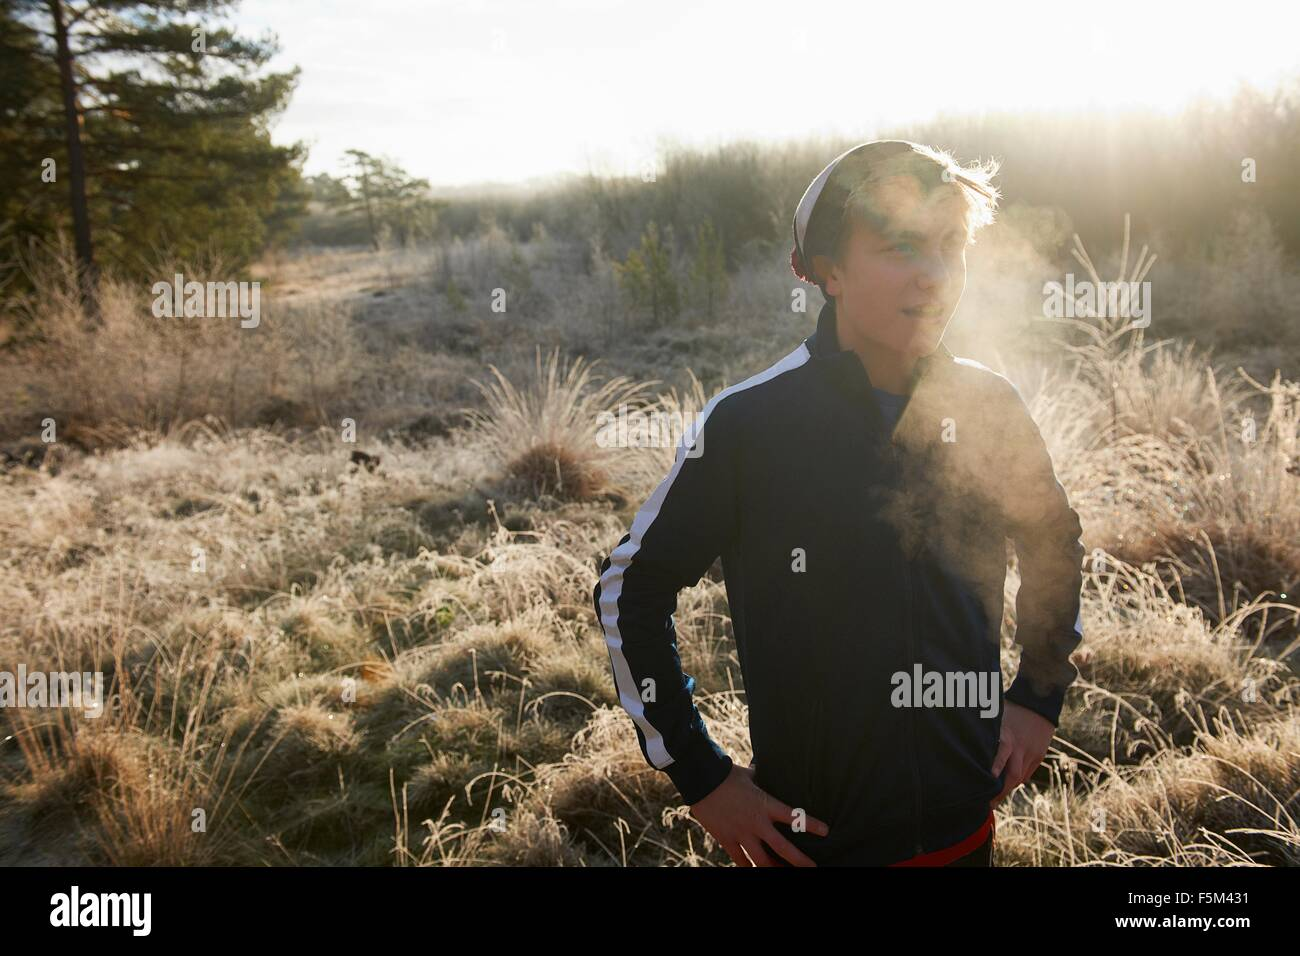 Teenage boy on frosty grassland, visible breath, hands on hips looking away - Stock Image